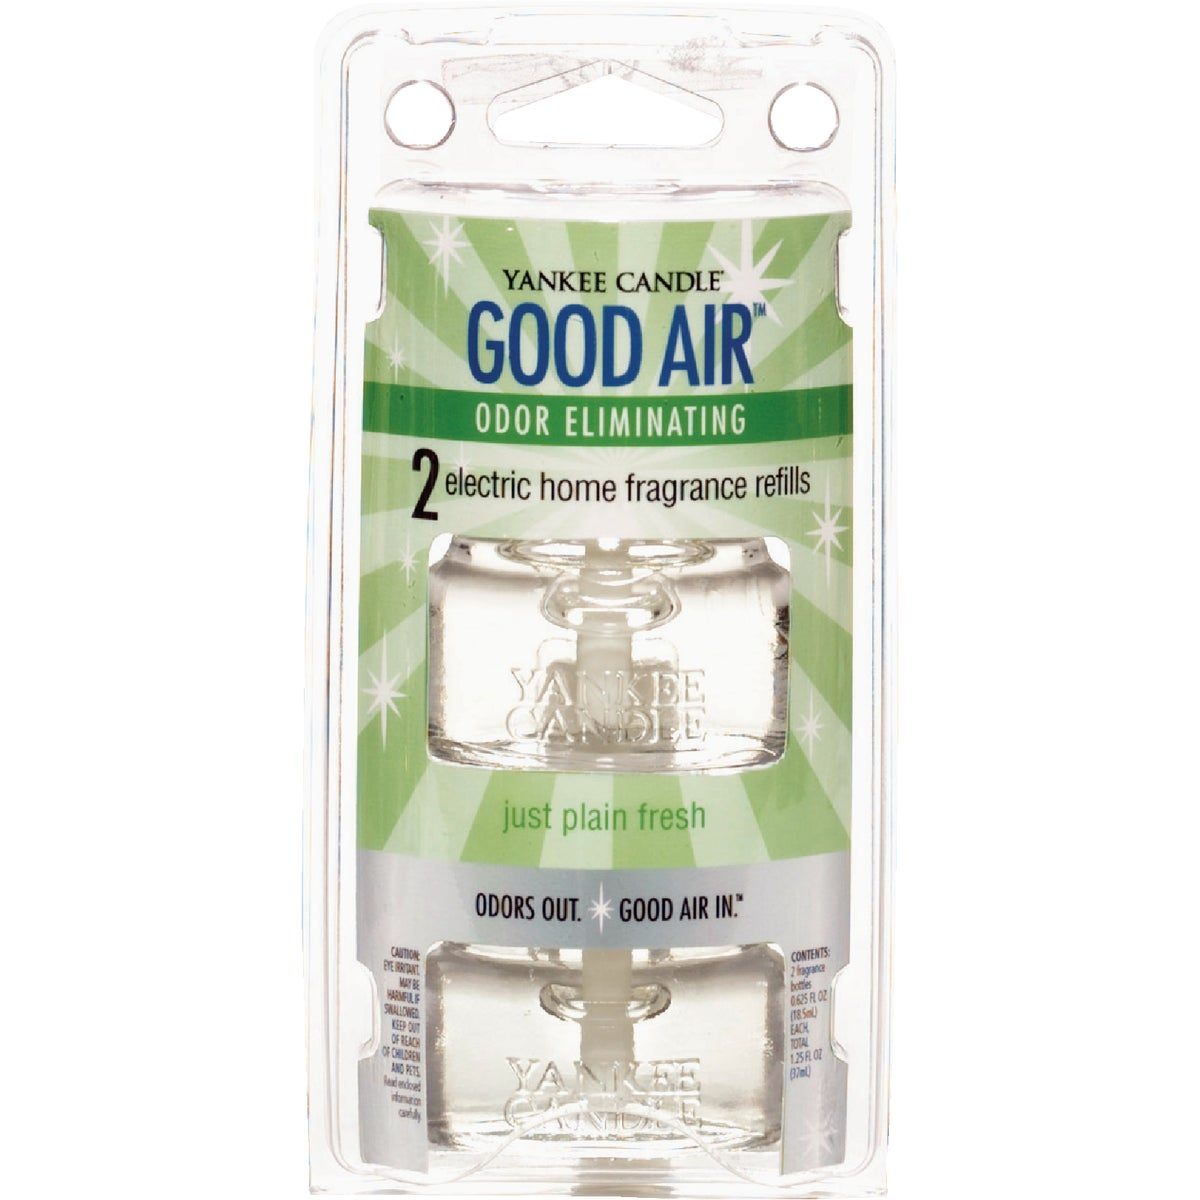 GOOD AIR ELECTRIC REFILL - 1200545 by Yankee Candle Co